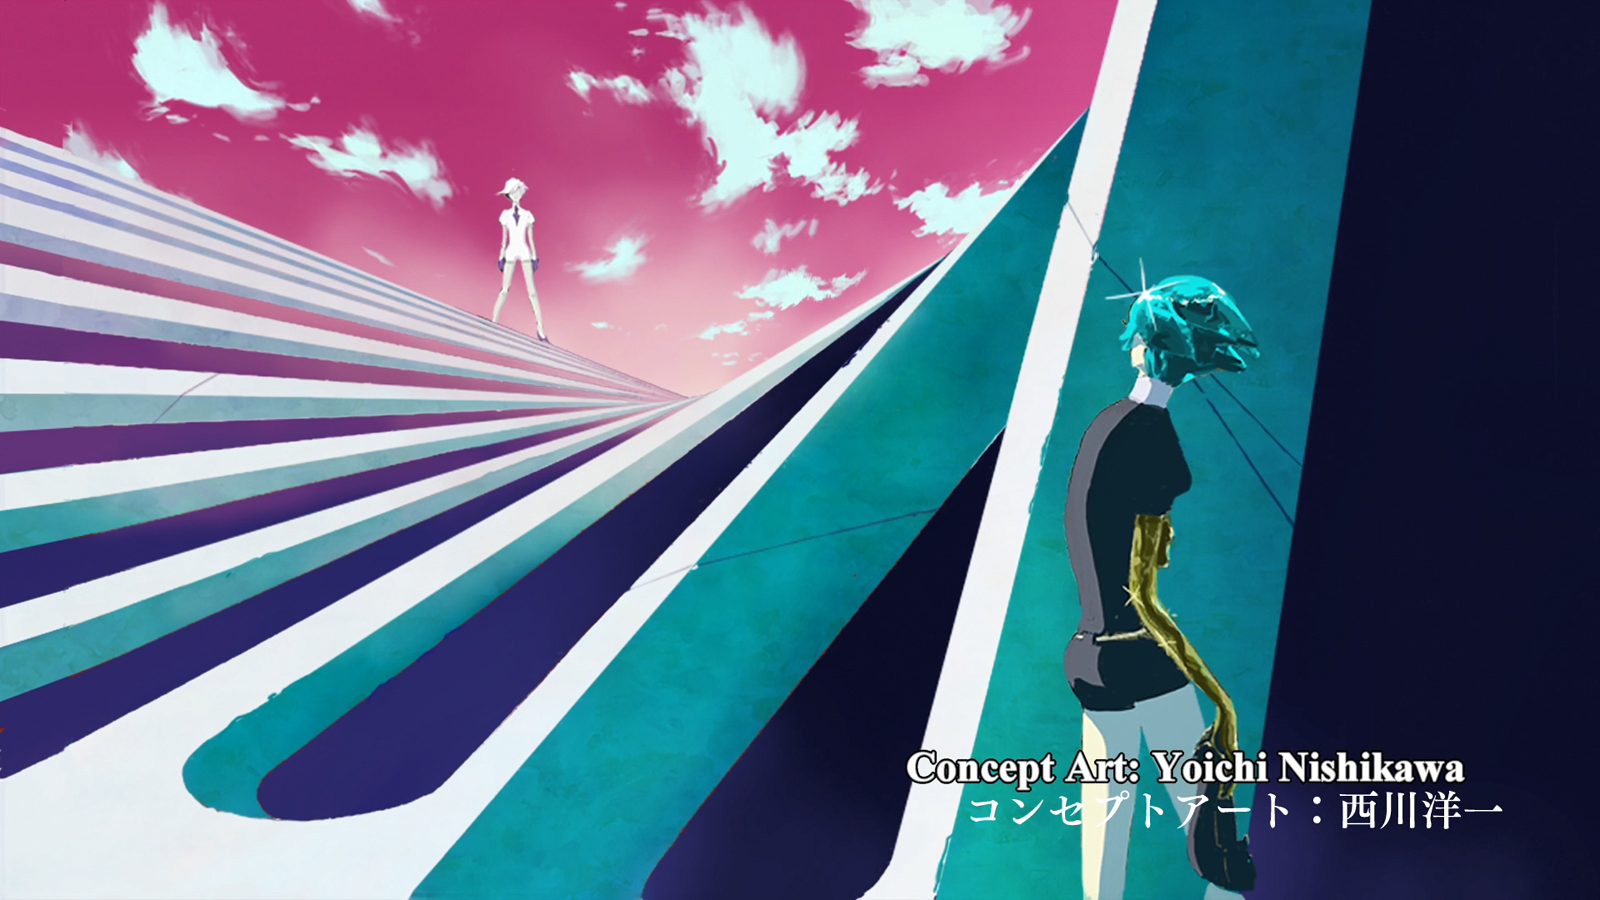 Houseki No Kuni Background Posted By Sarah Peltier